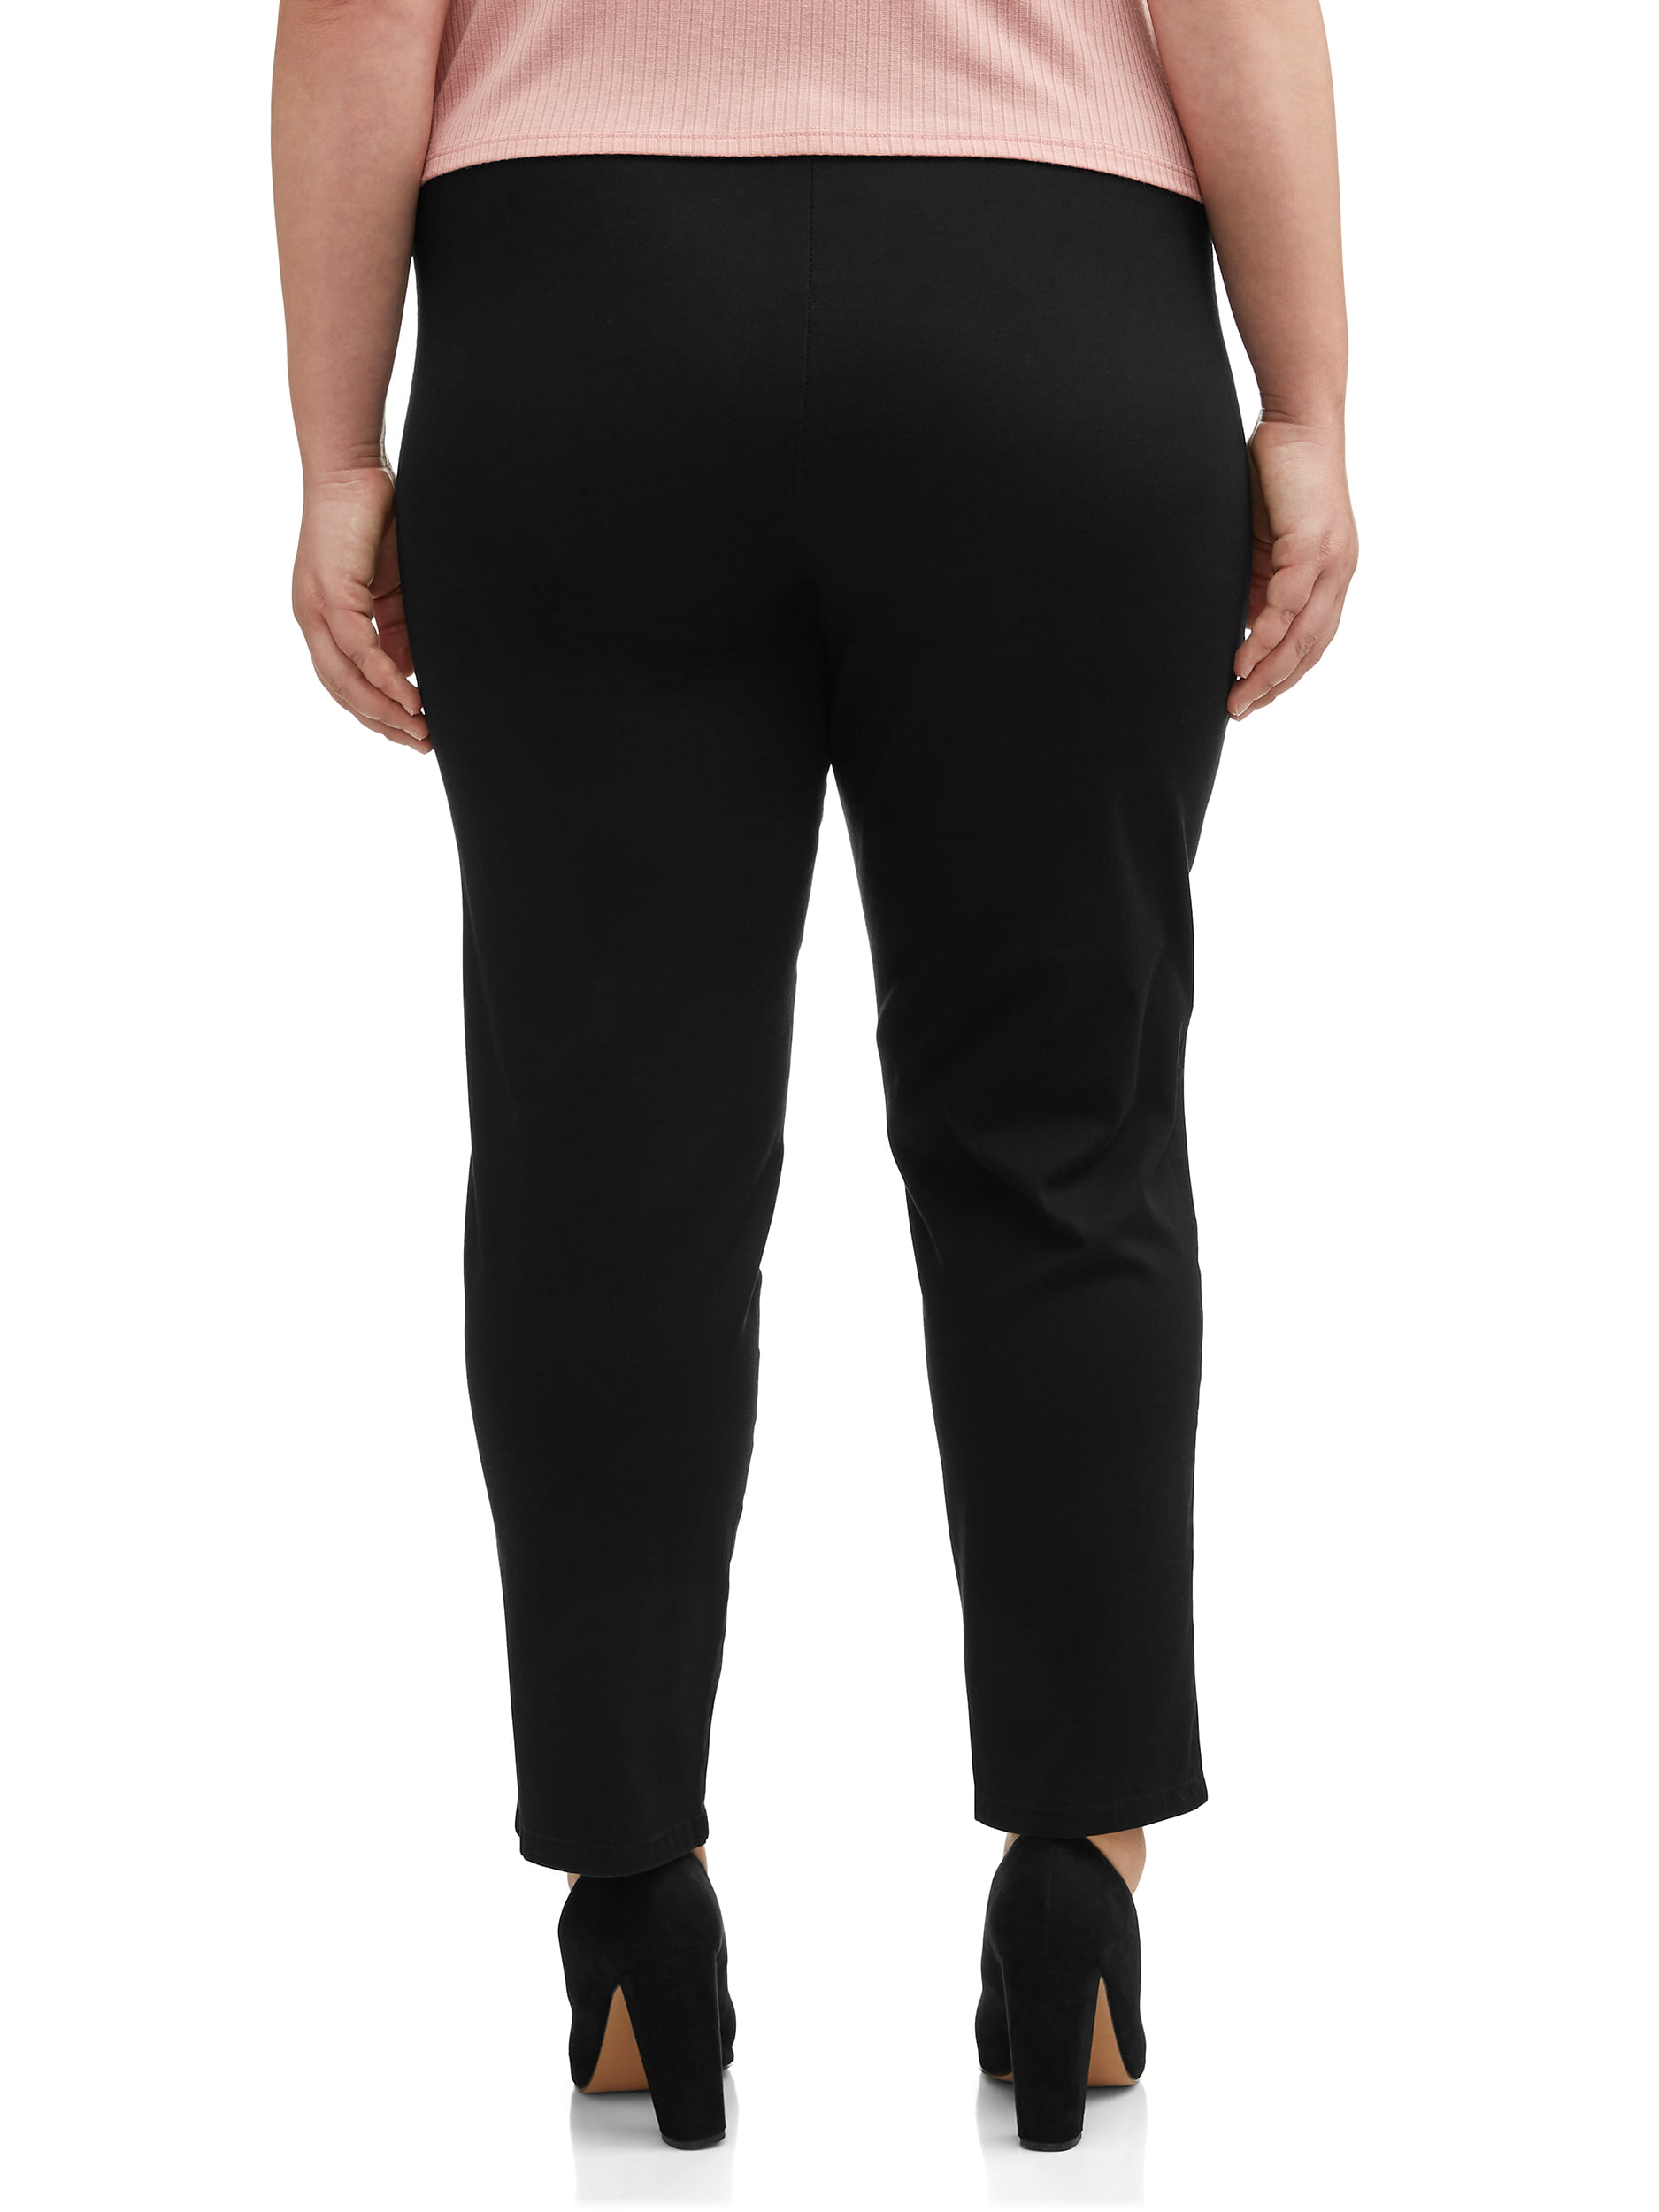 b4c0130e272cc Just My Size - Women's Plus-Size 2-Pocket Pull-On Stretch Woven Pants,  Available in Regular and Petite Lengths - Walmart.com